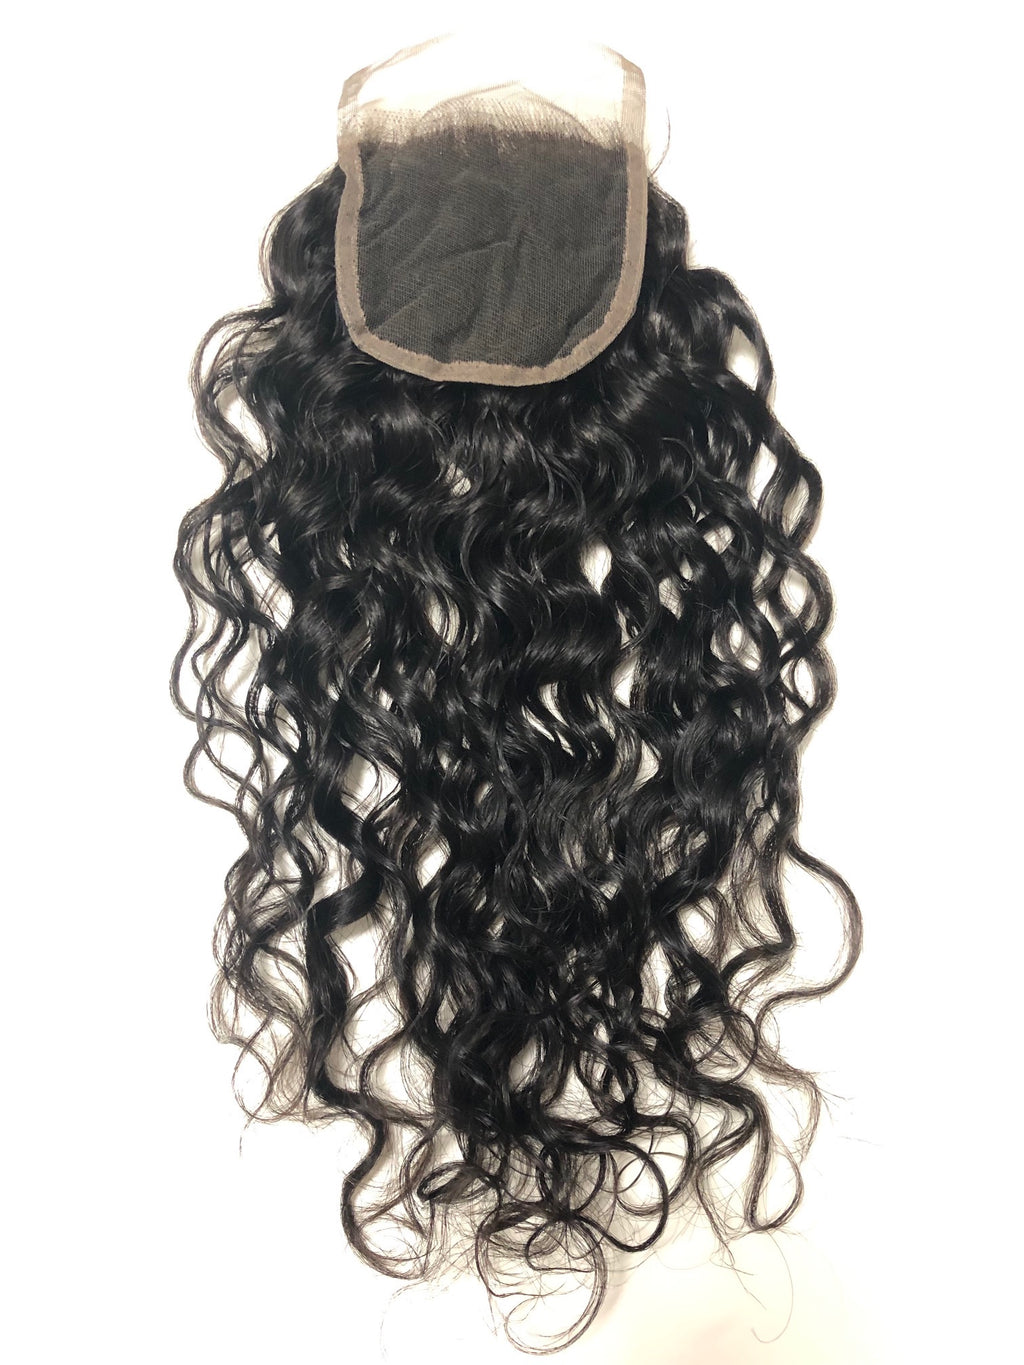 Lace Closure - Natural Curly